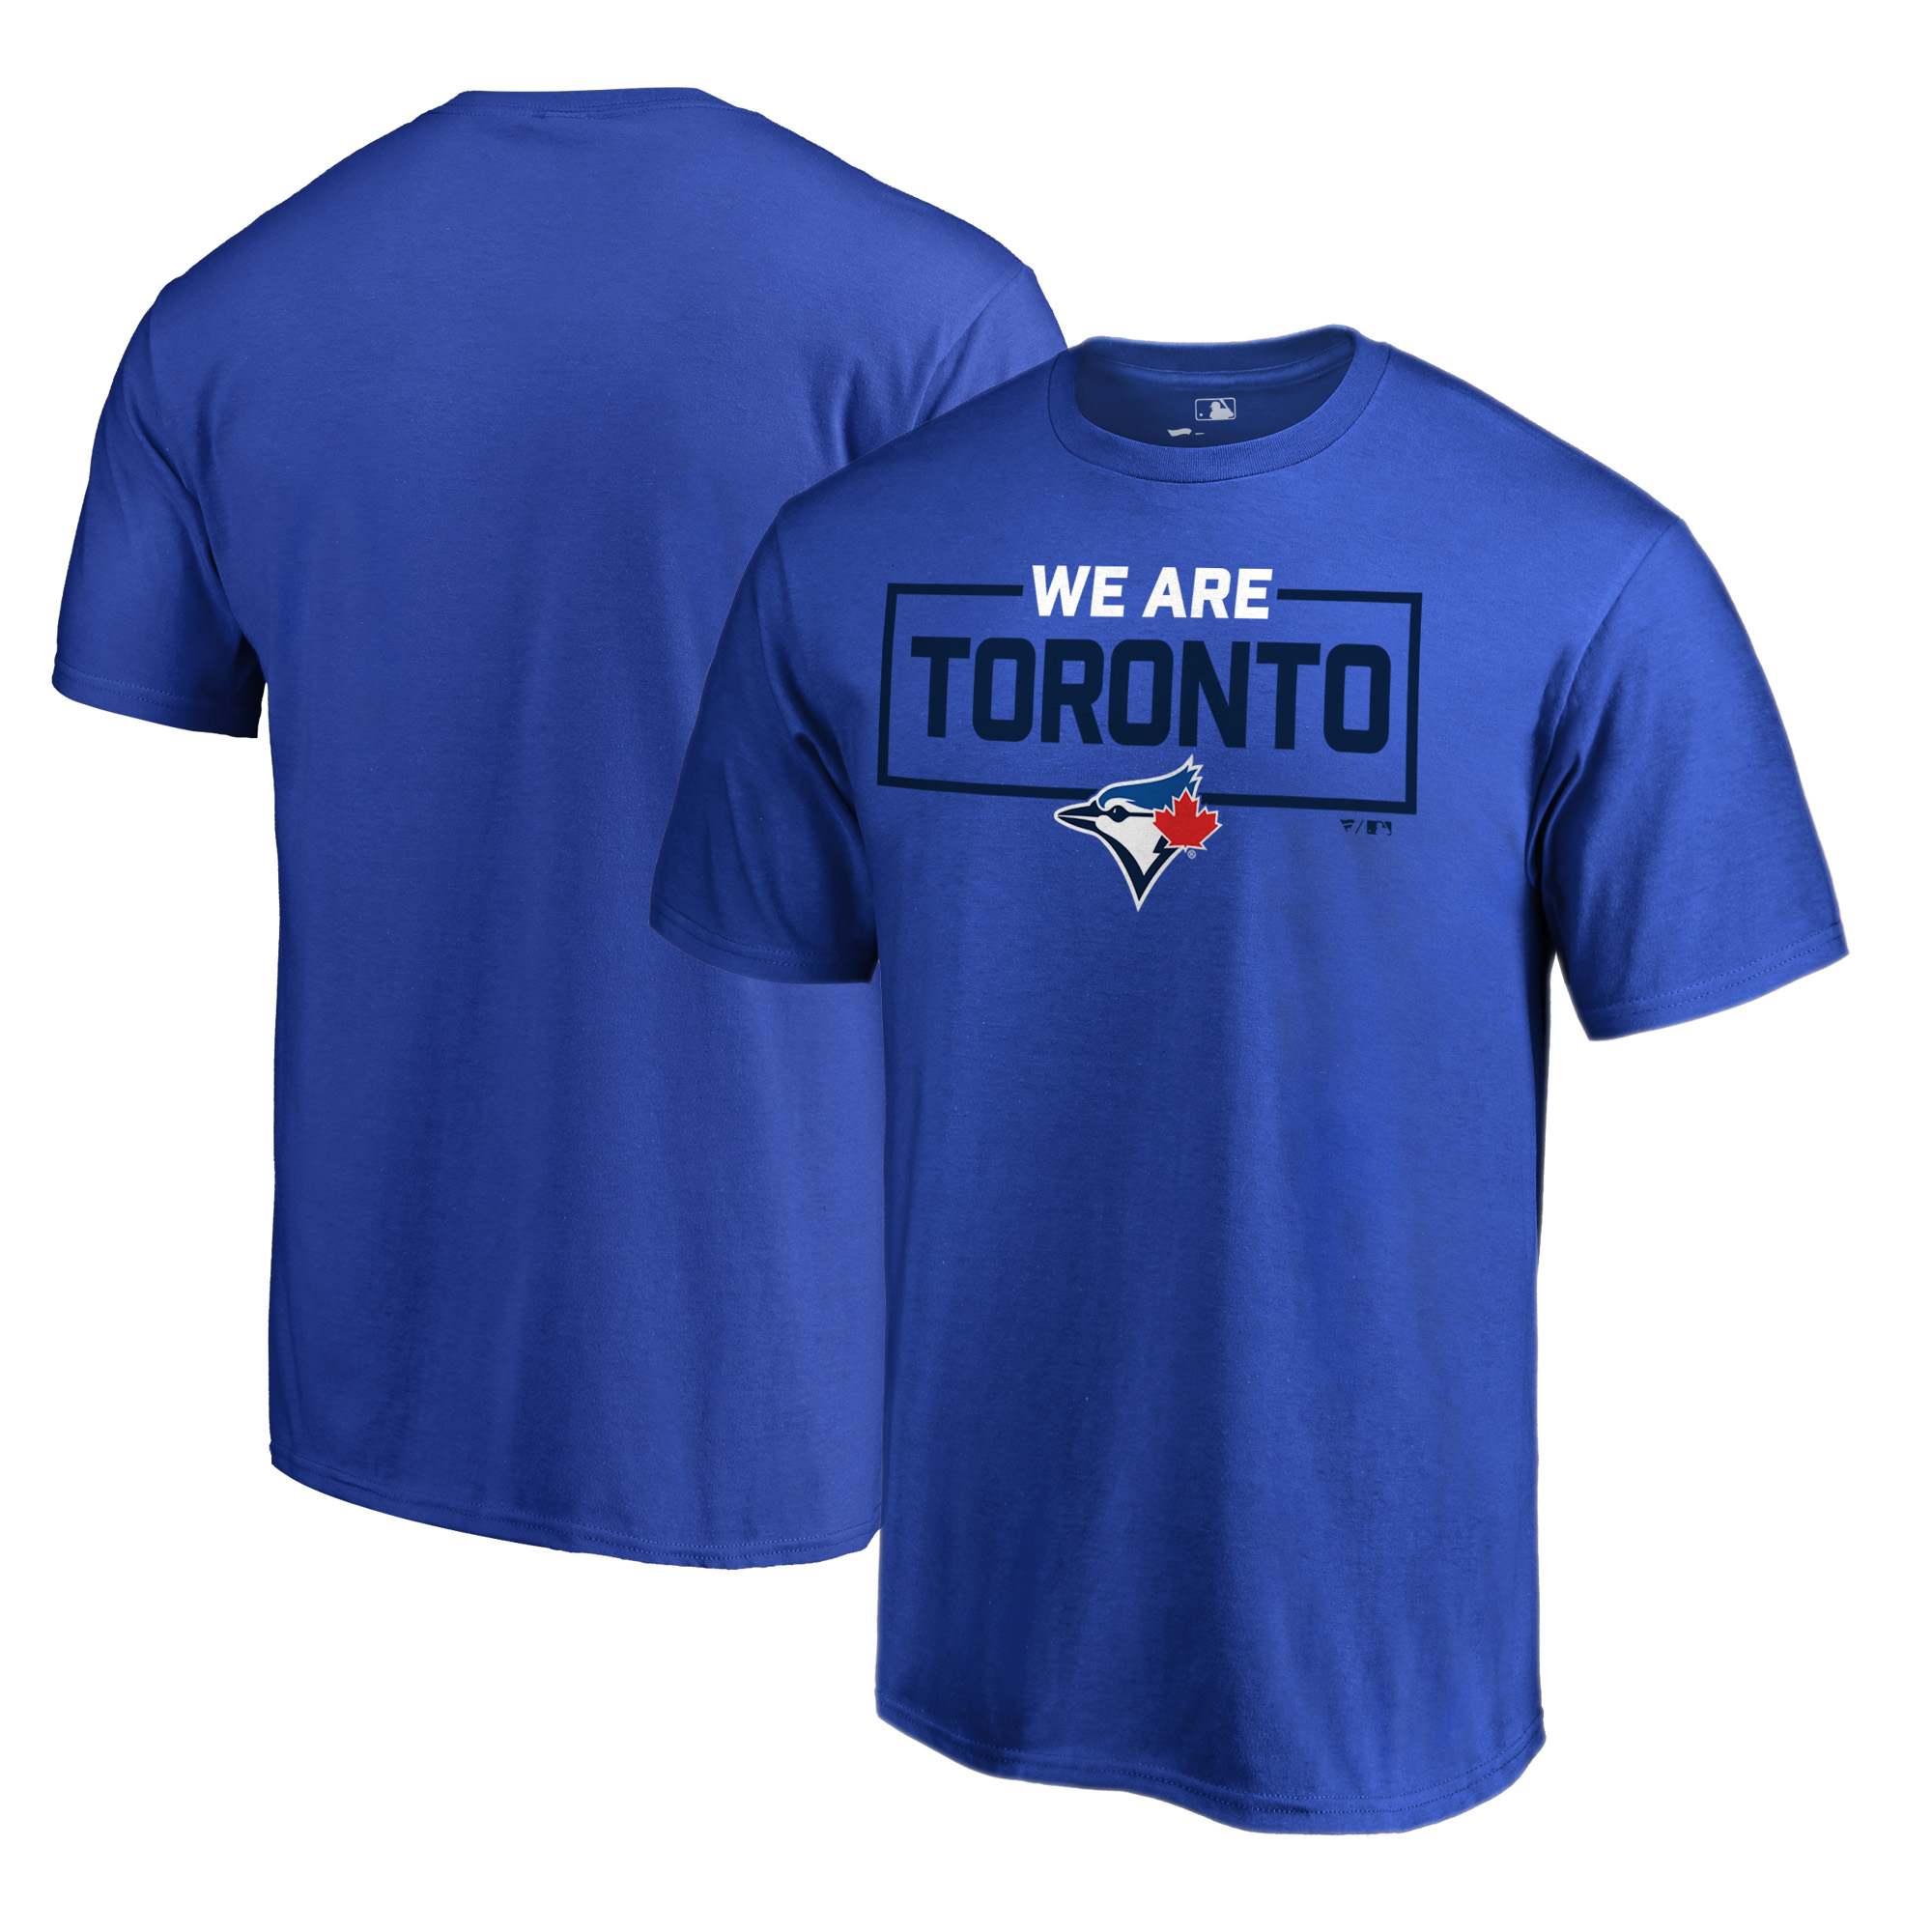 Toronto Blue Jays Fanatics Branded We Are Icon T-Shirt - Royal